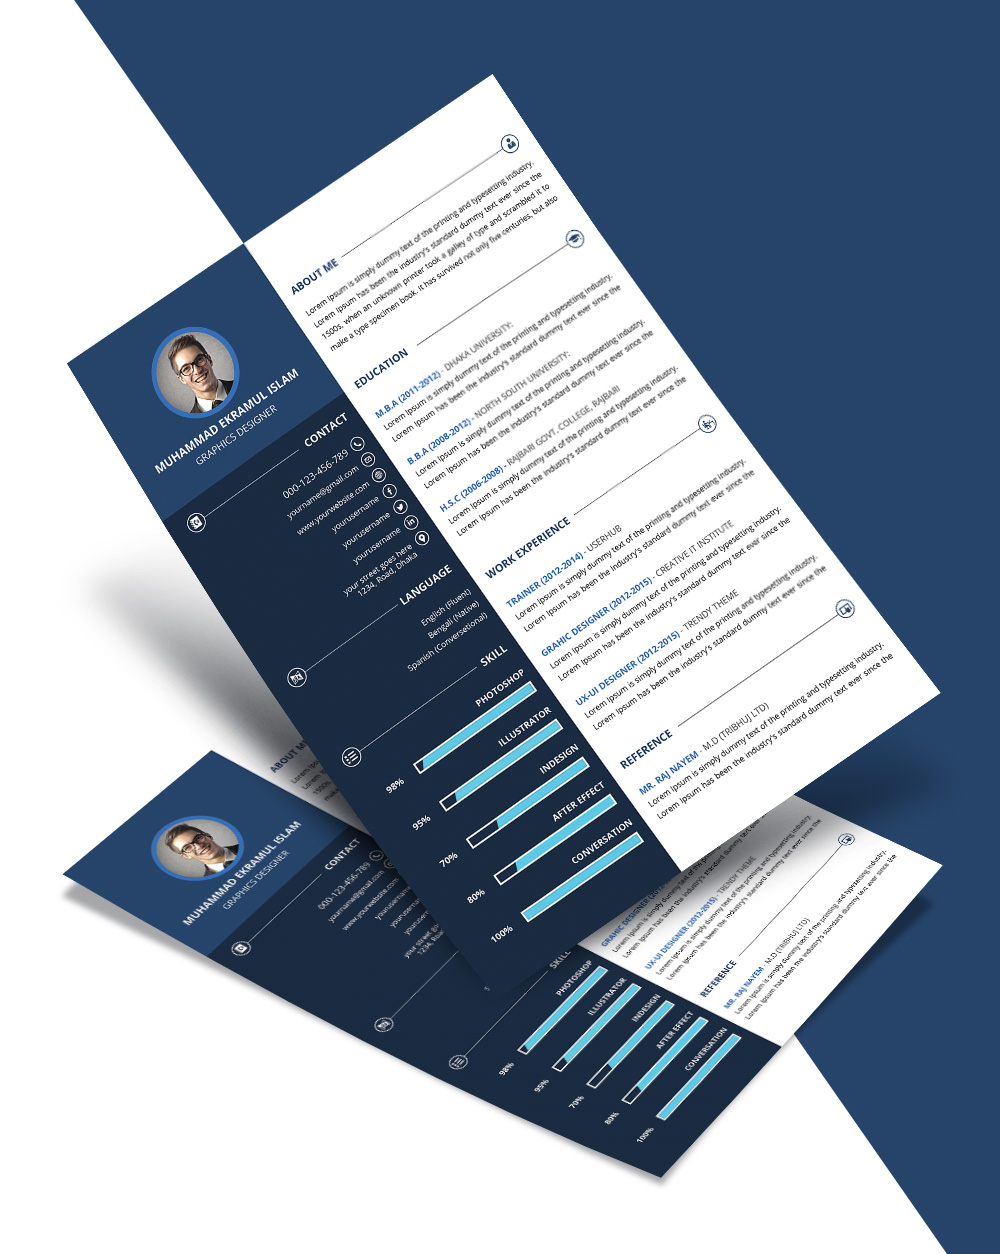 Free Beautiful Resume Cv Design Template Psd File Good Resume